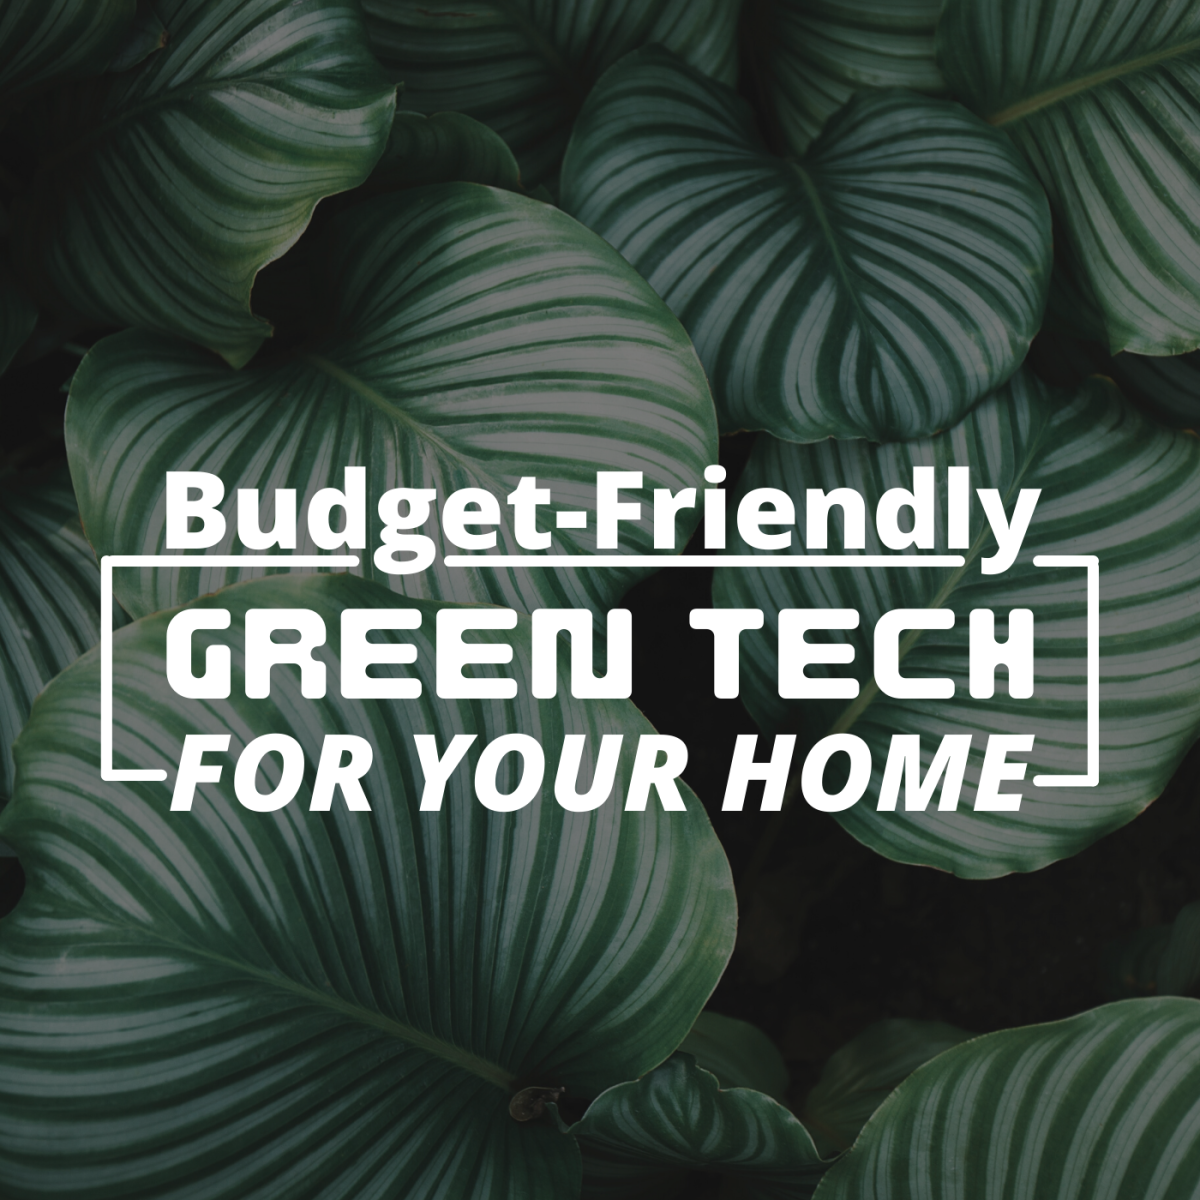 Top 4 Eco-Friendly Smart Home Products Under $200